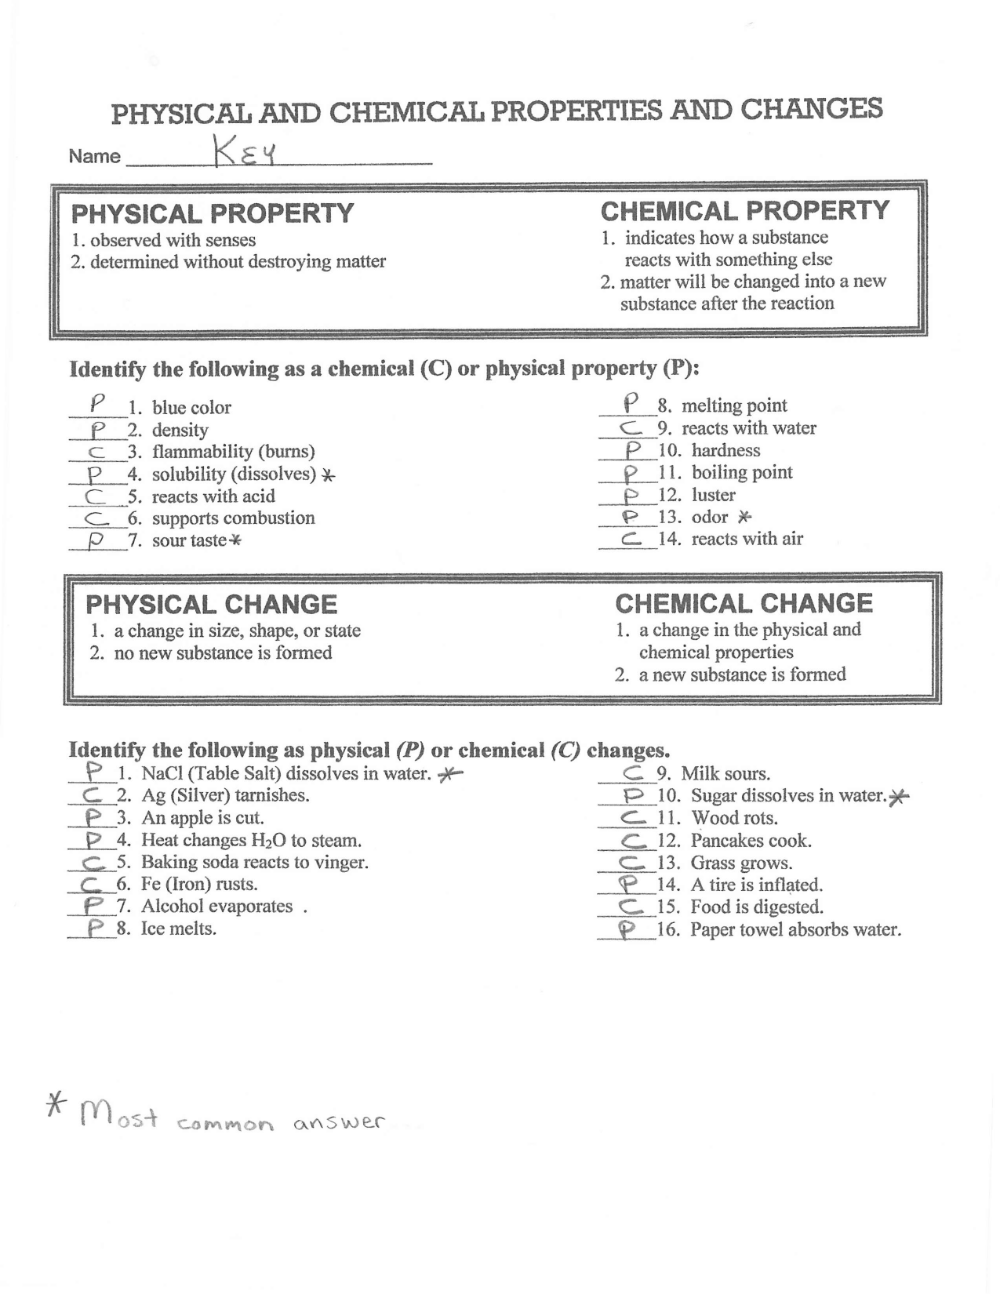 physical and chemical properties and changes answer key